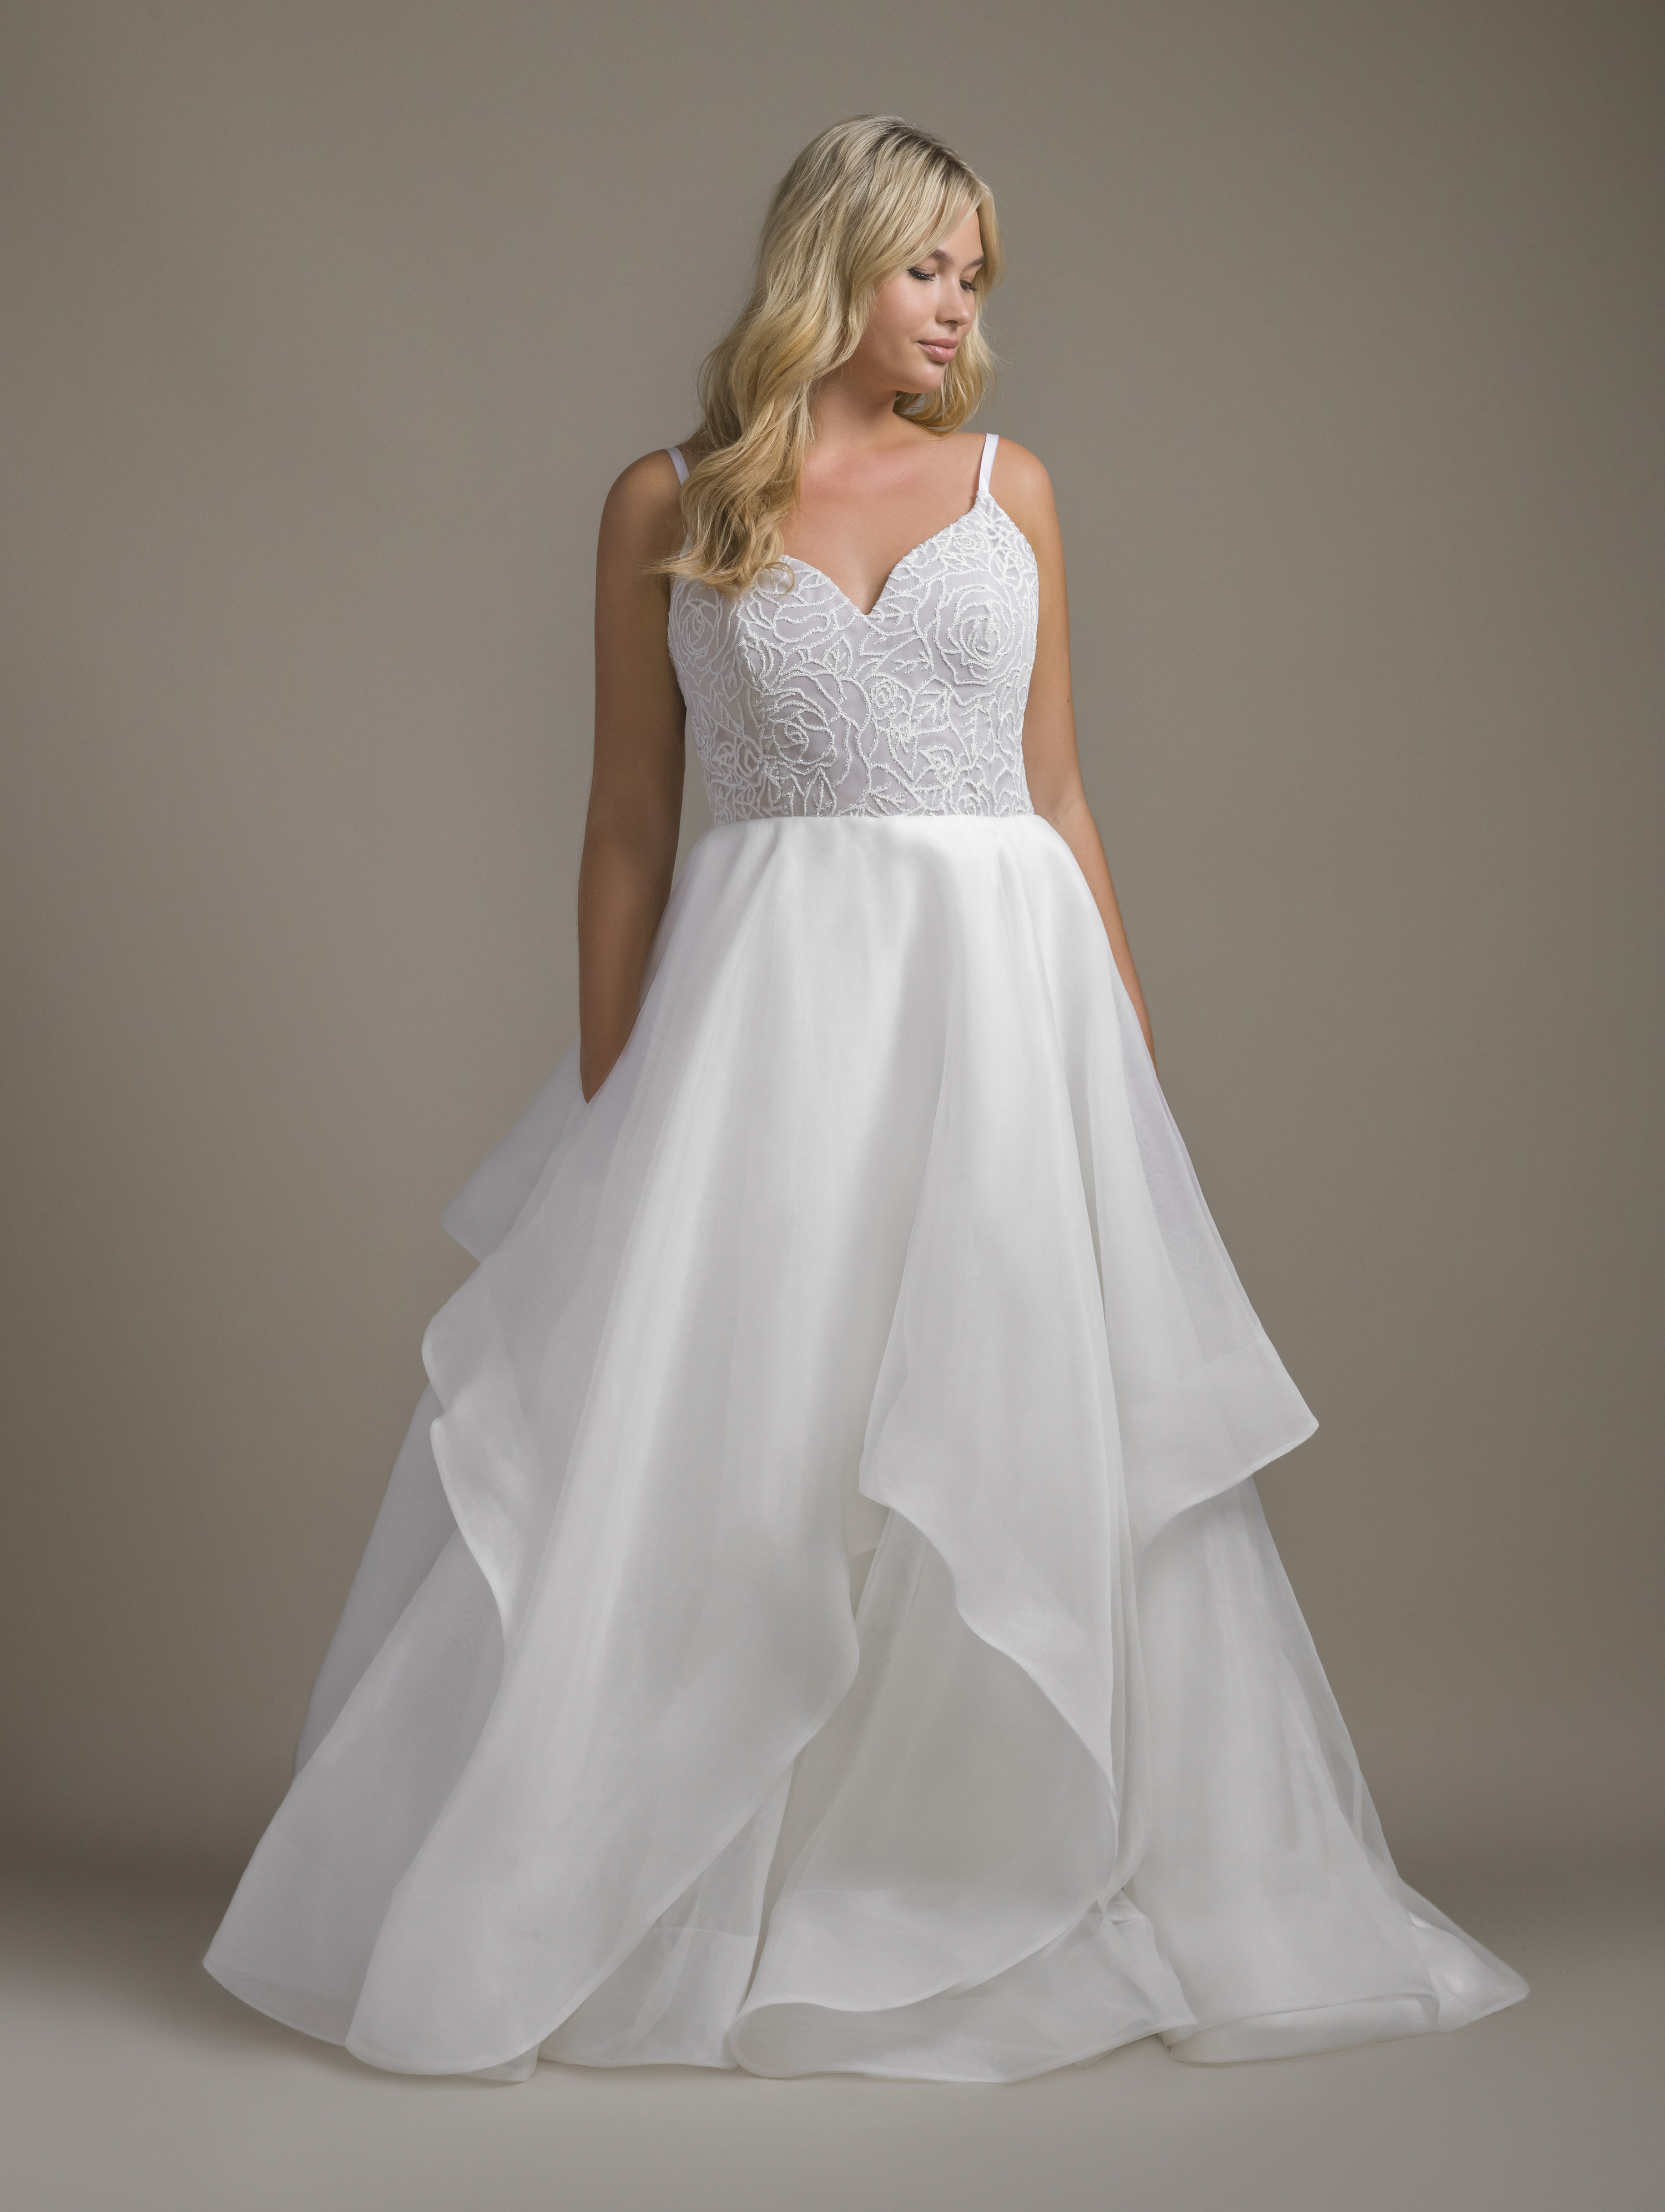 8a483cfcd9 Bridal Gowns and Wedding Dresses by JLM Couture - Style 1853 Perri